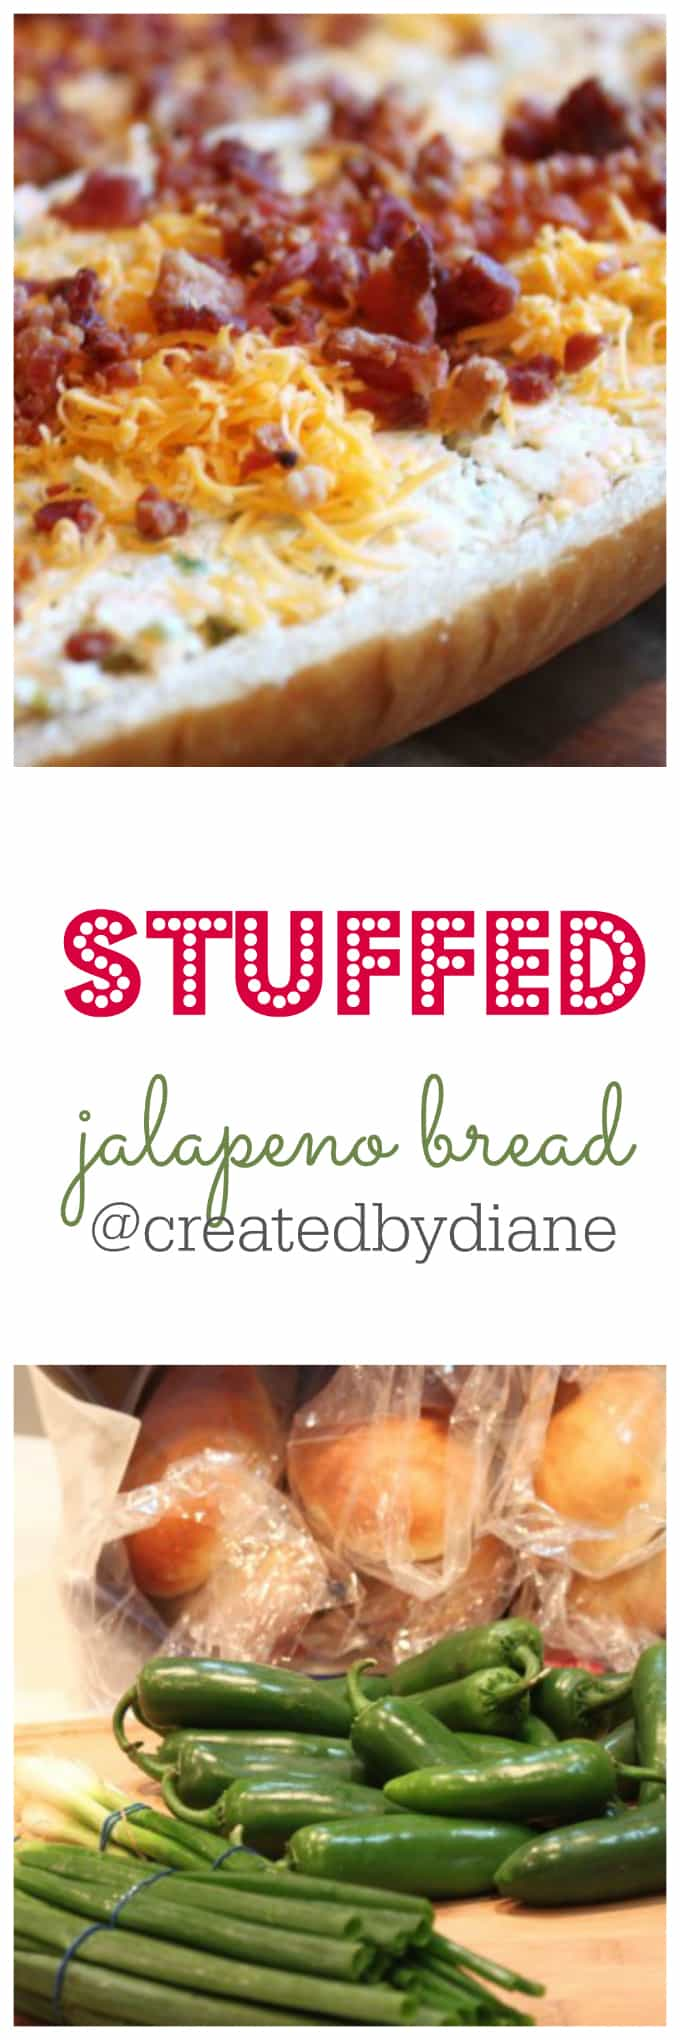 stuffed jalapeno bread appetizer with bacon and cheese @createdbydiane